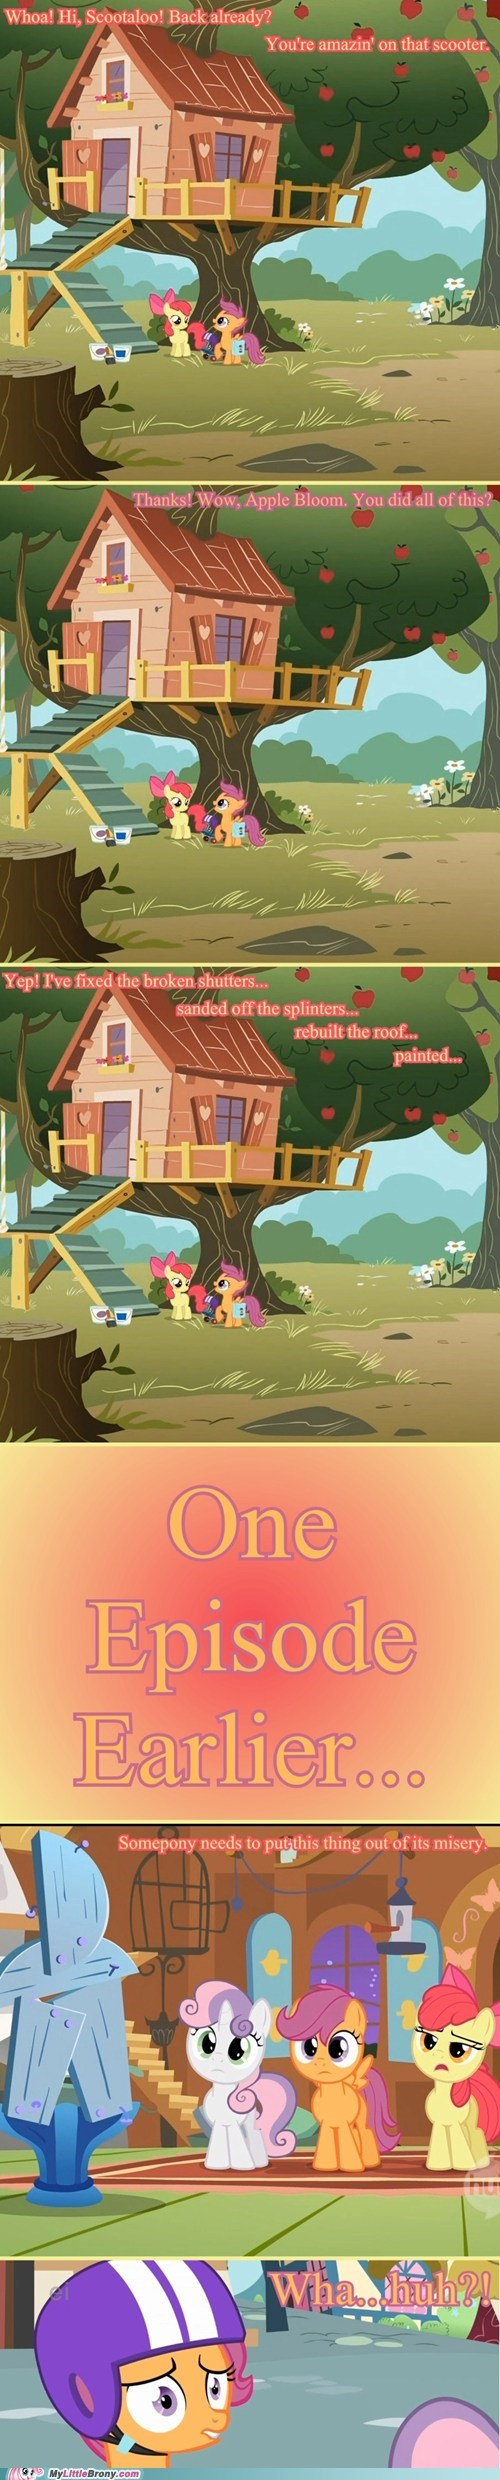 apple bloom cmc comic comics cutie mark crusaders Scootaloo - 5892199168